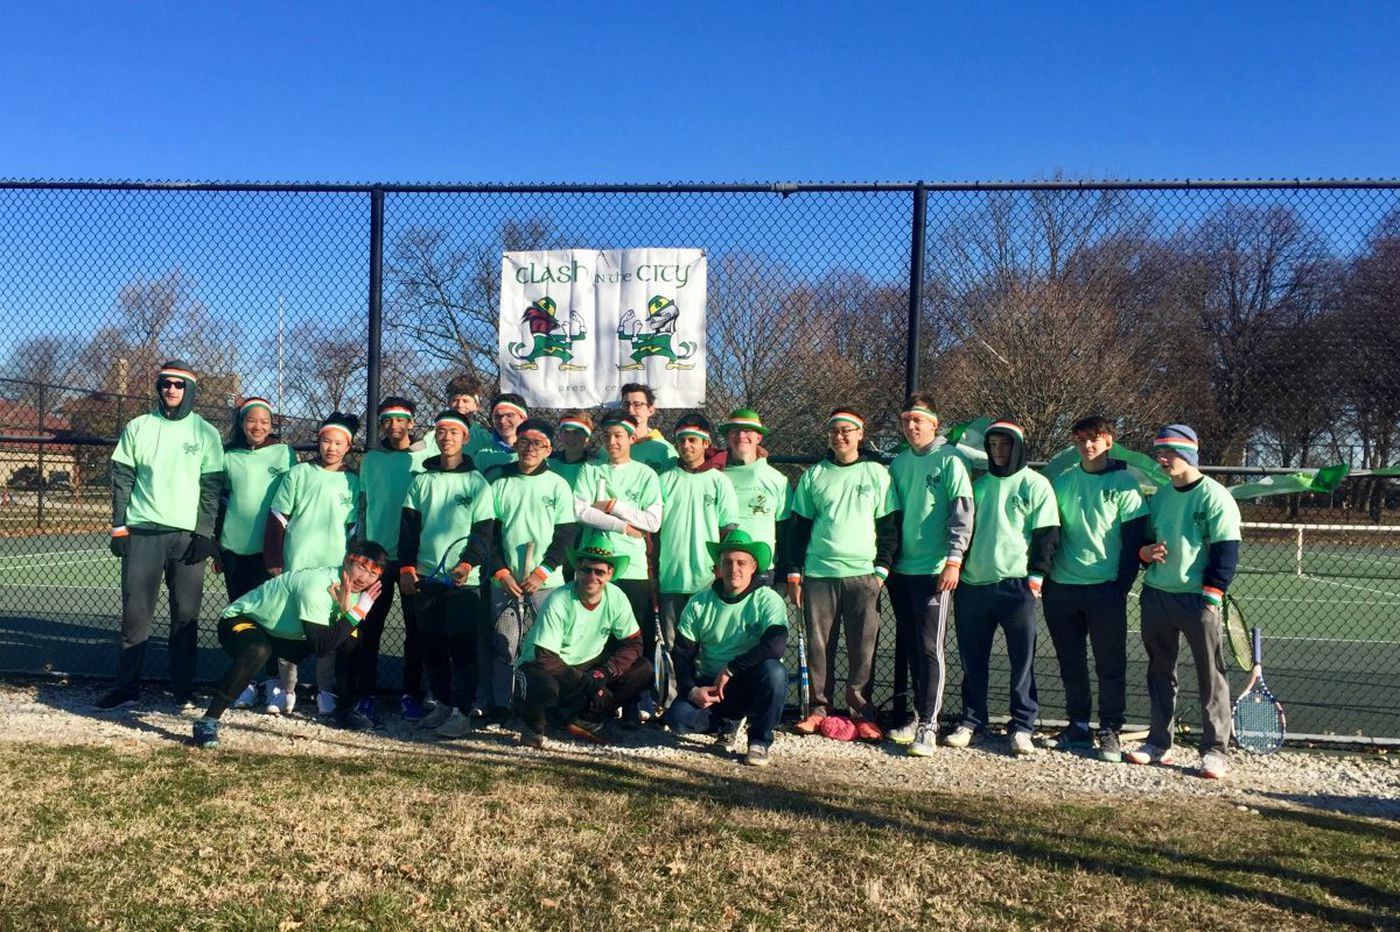 Central and St. Joseph's Prep tennis teams combine for annual 'Clash in the City' tradition